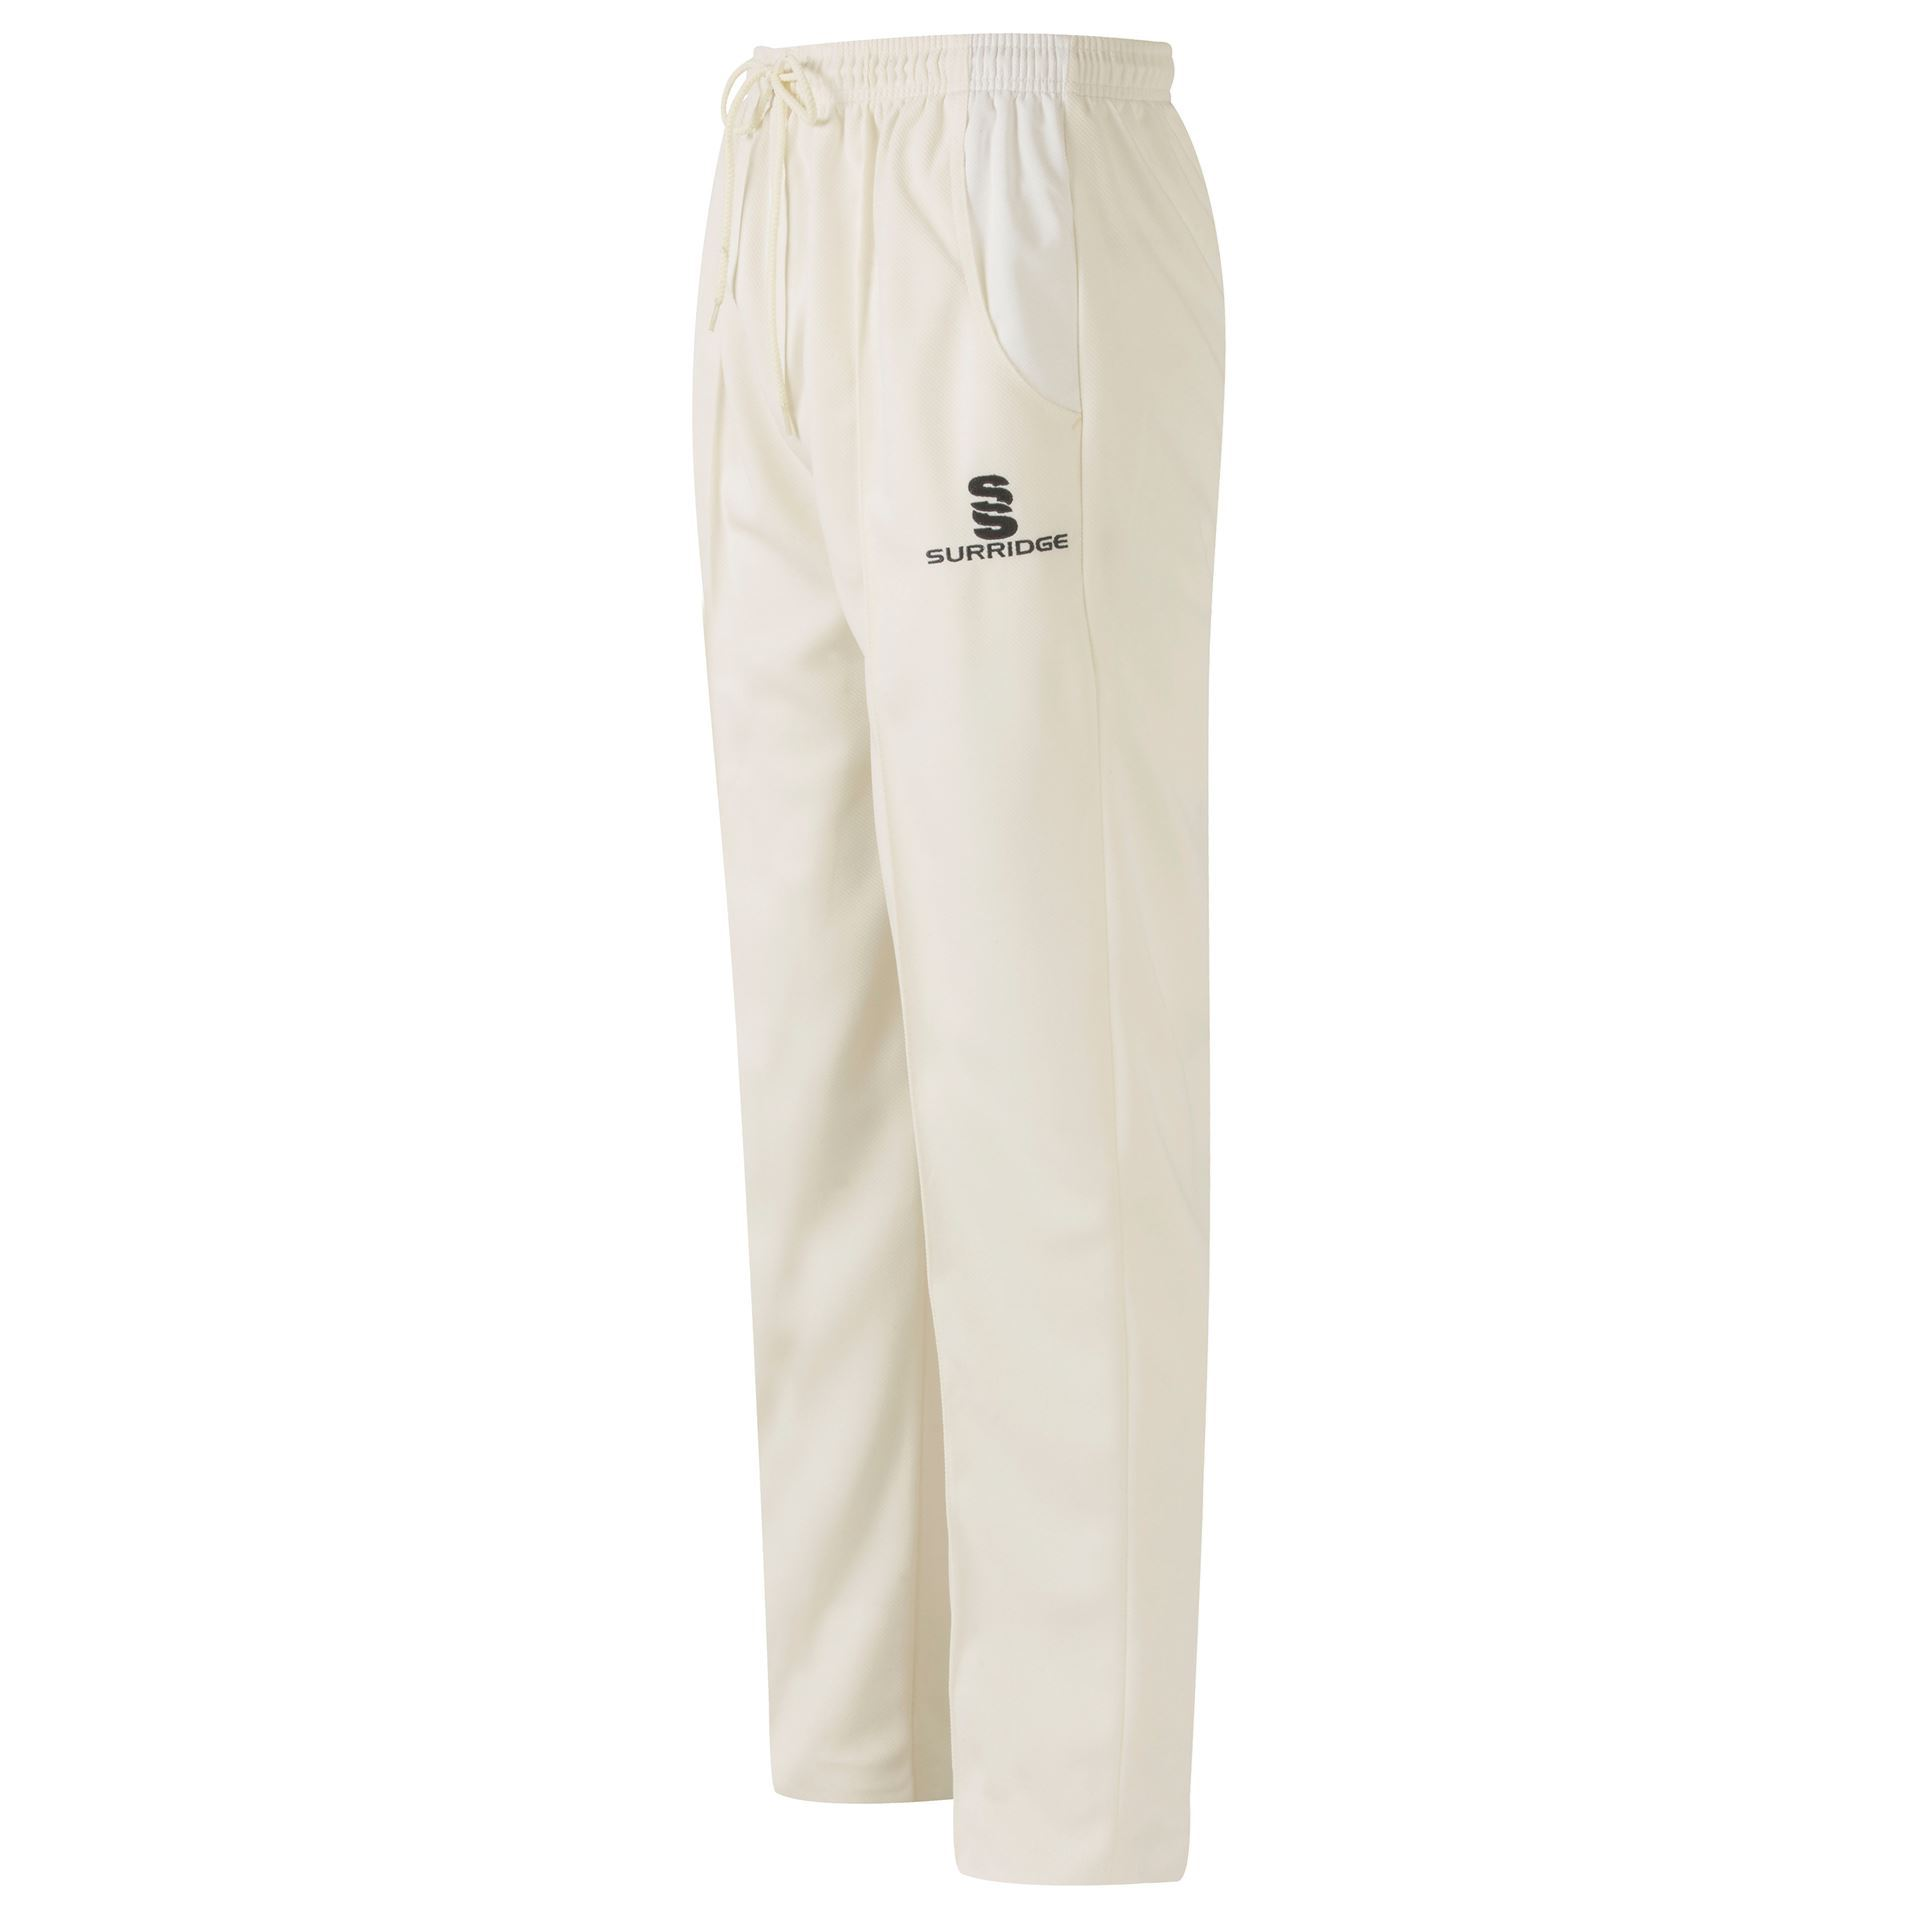 The Hills White Cricket Trousers